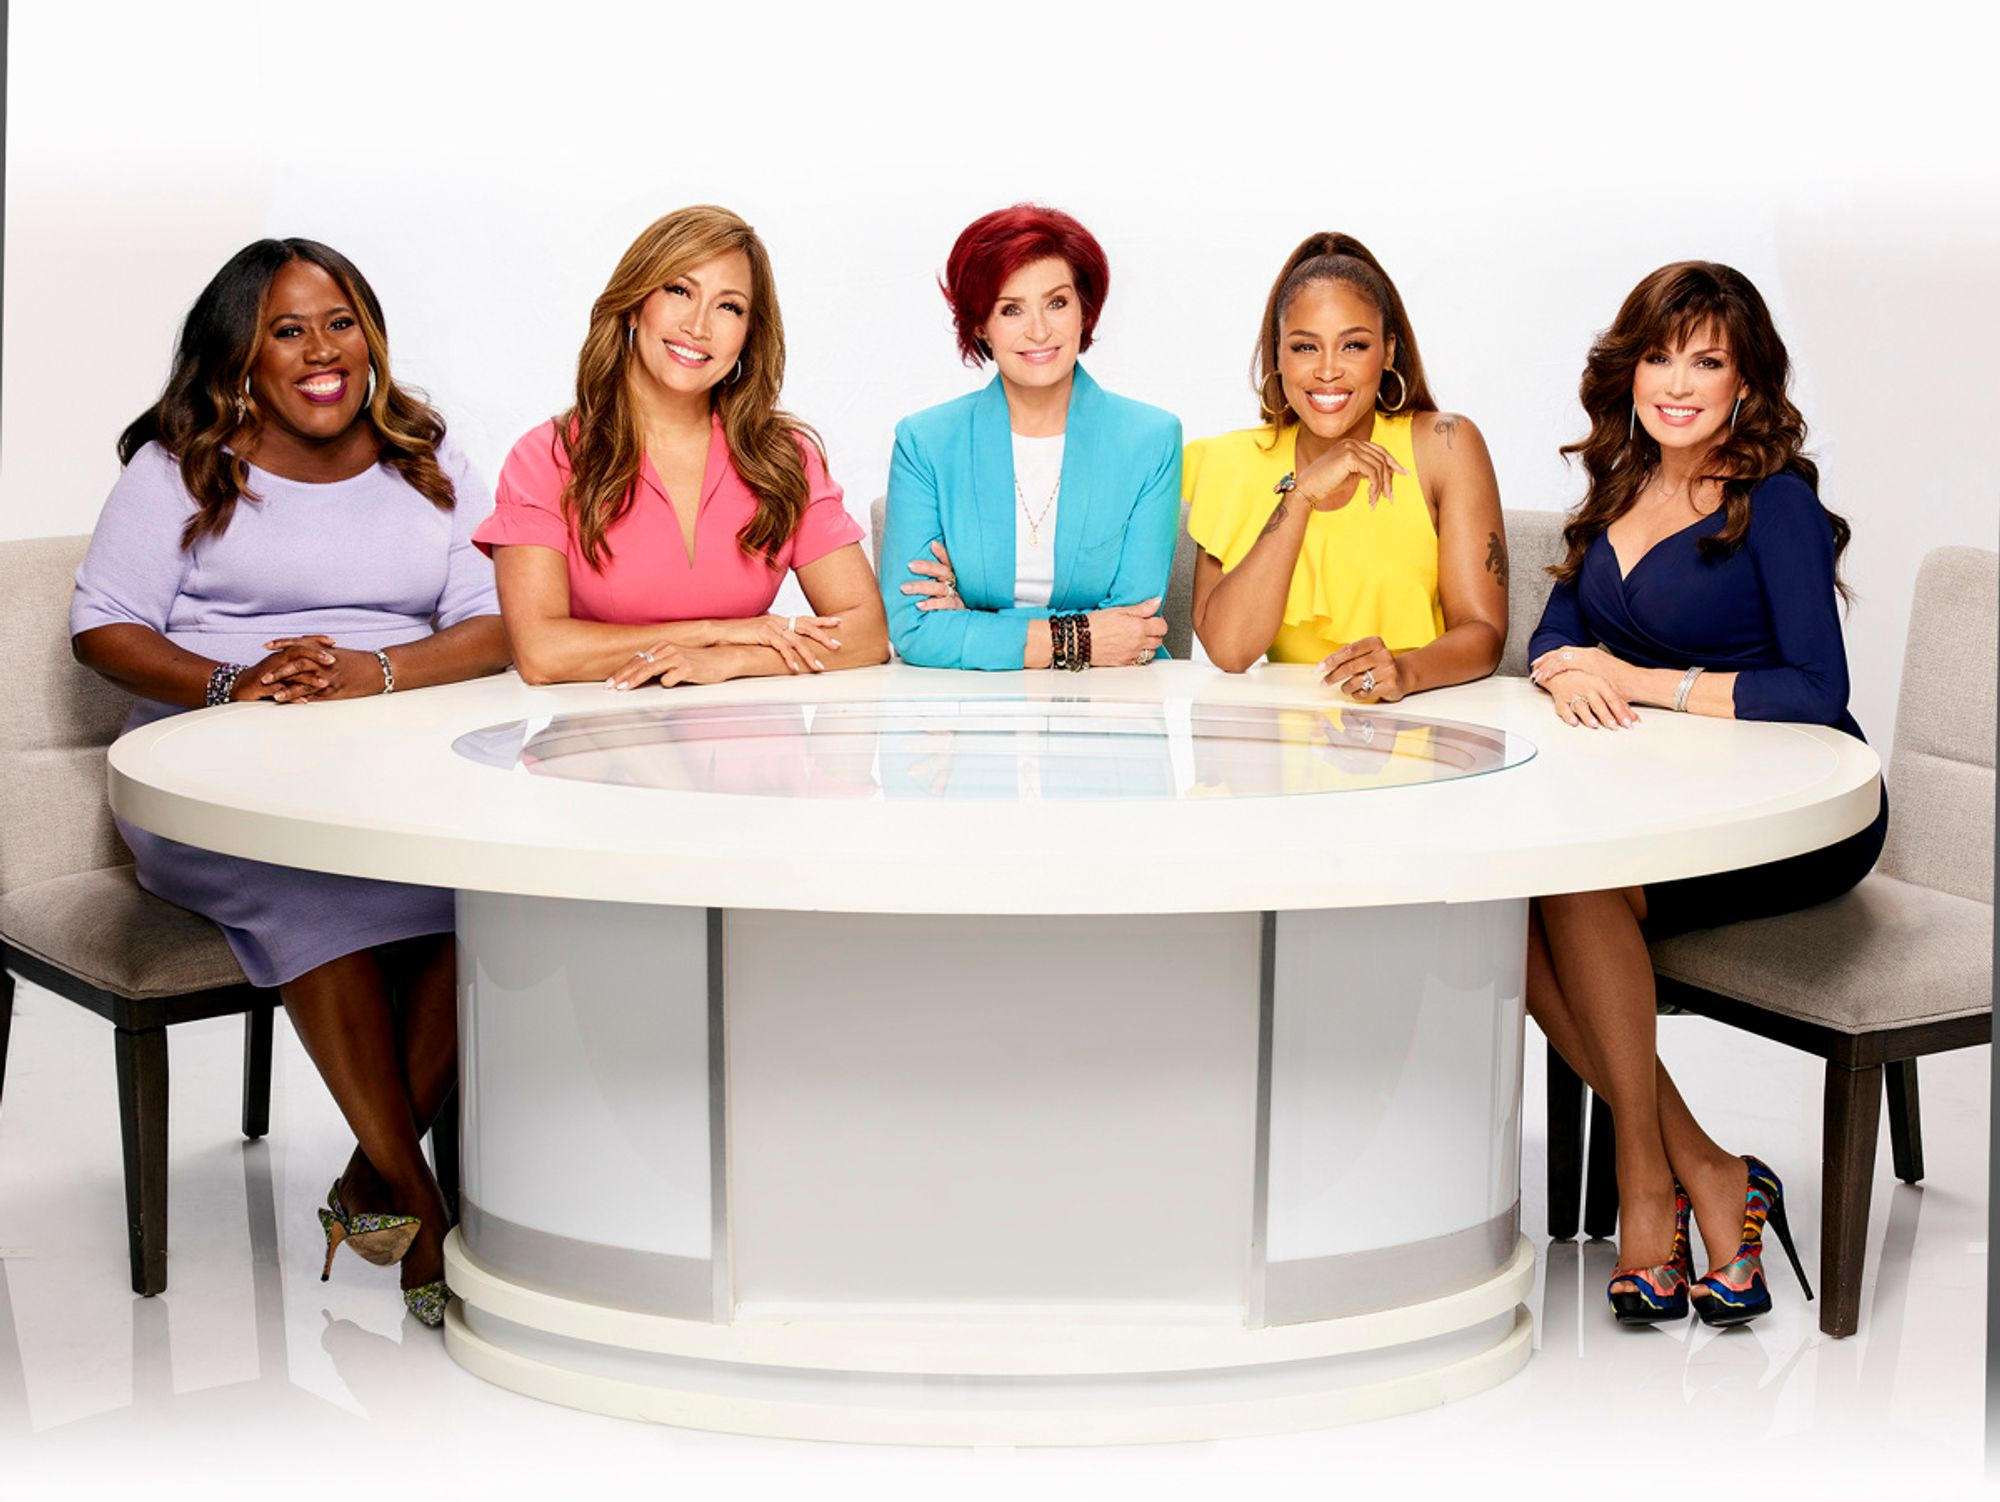 Sheryl Underwood, Carrie Ann Inaba, Sharon Osbourne, Eve Cooper, and Marie Osmond.